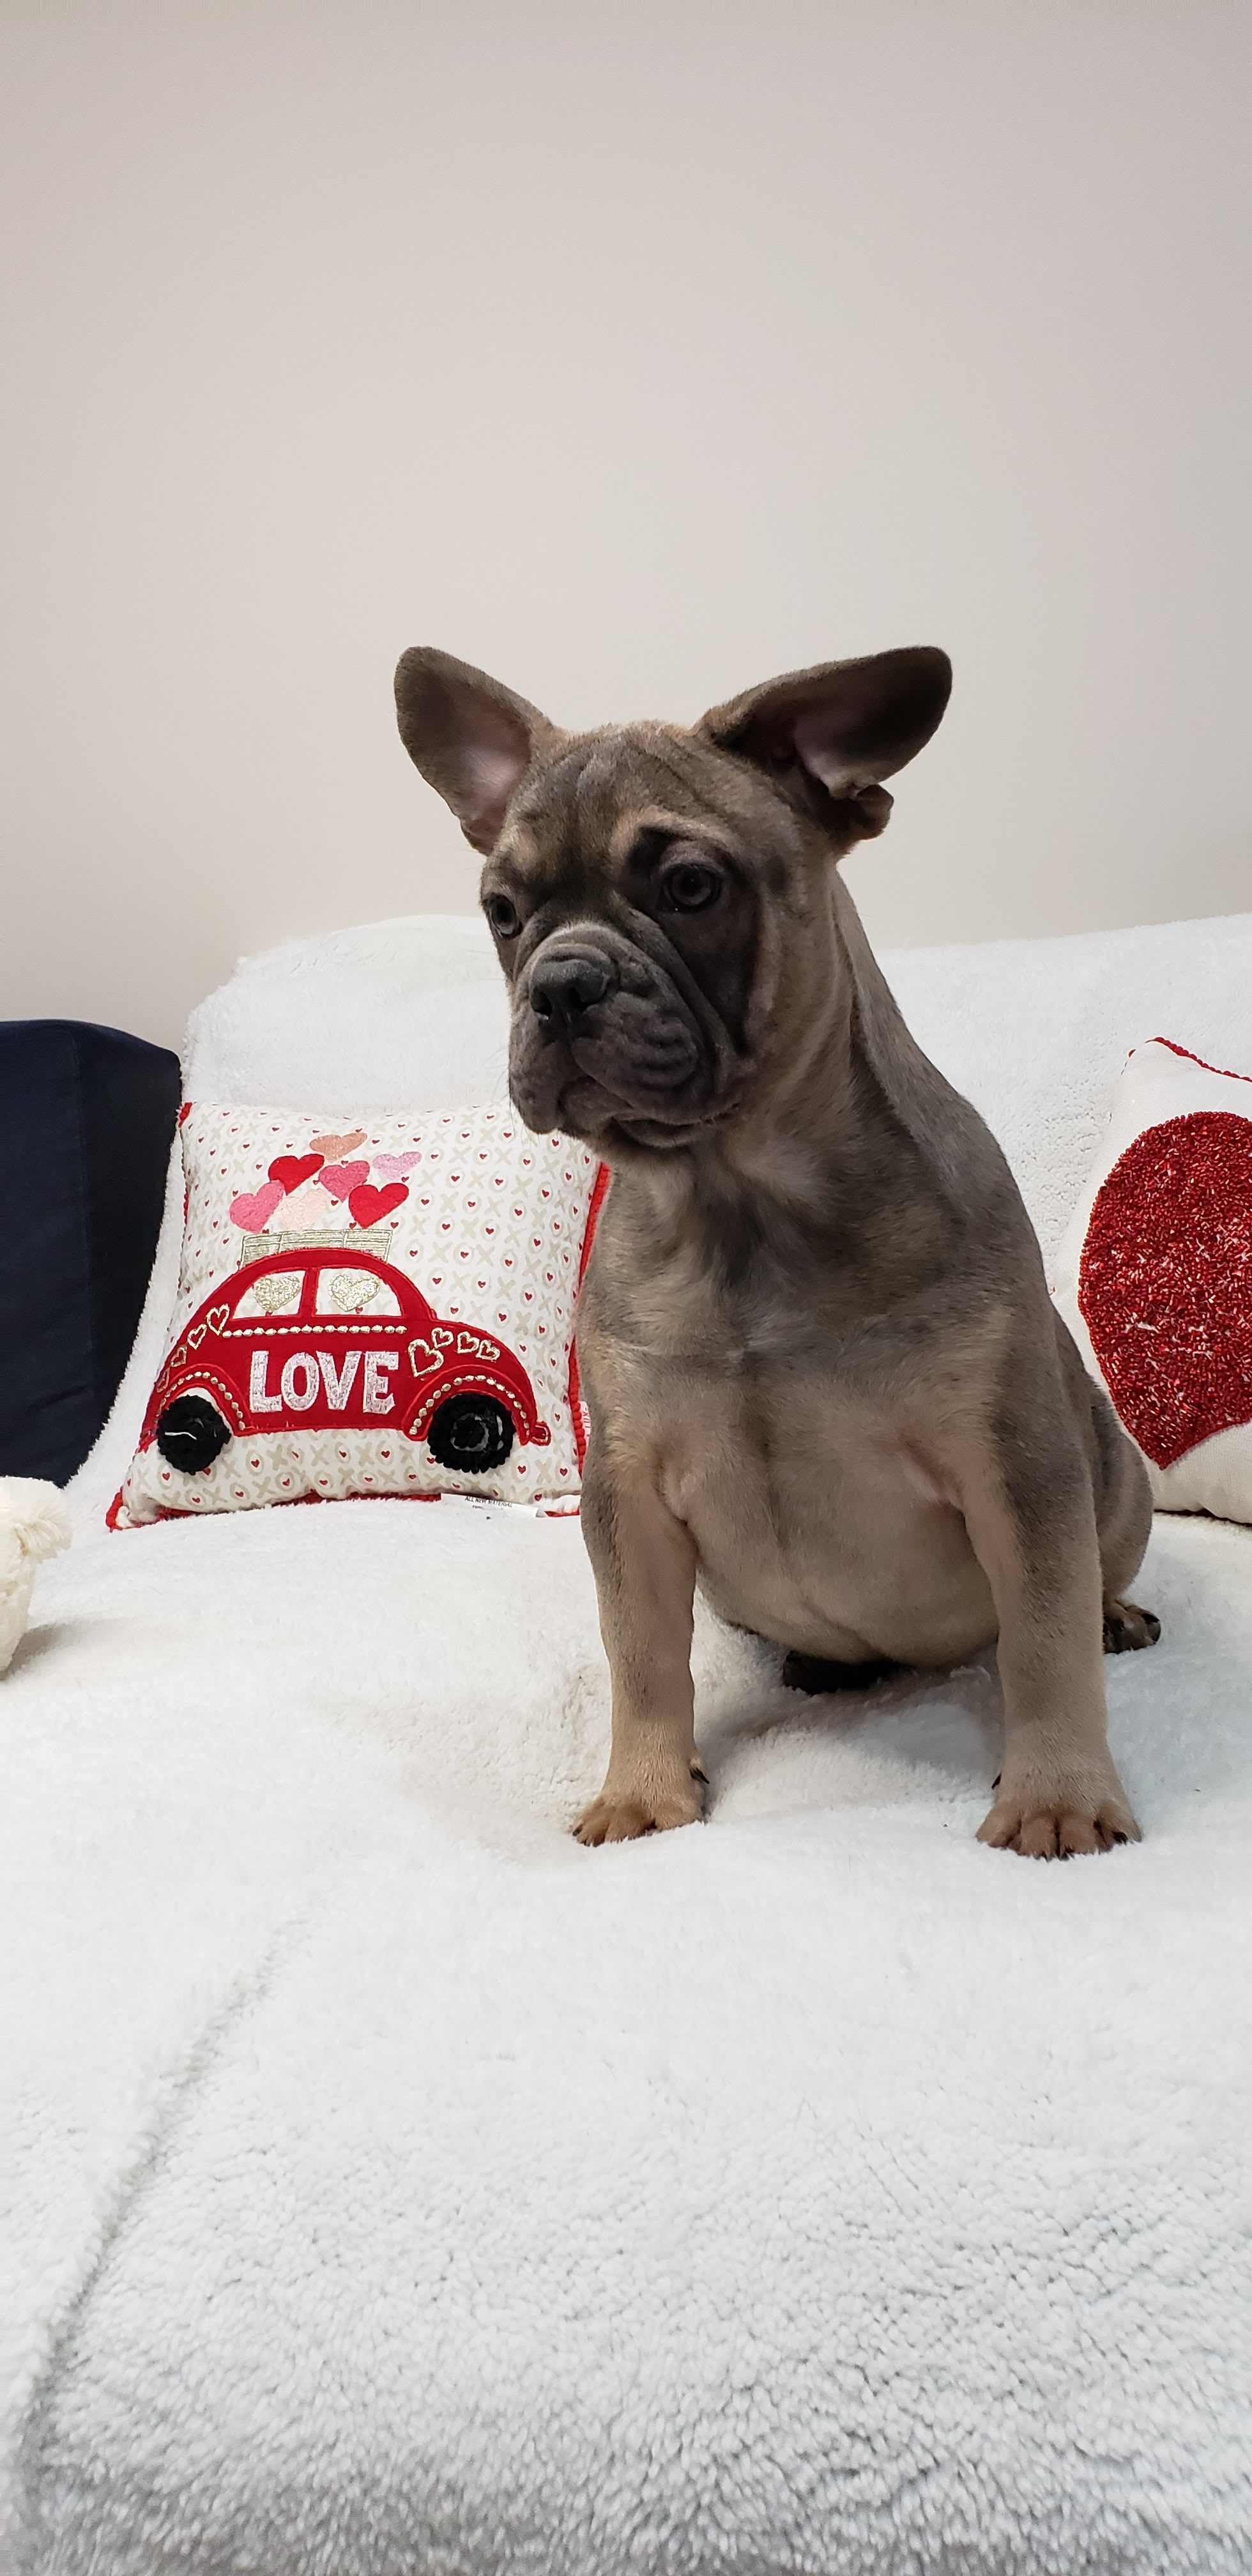 Queen Female French Bulldog Doggie For Sale At Stamford Connecticut